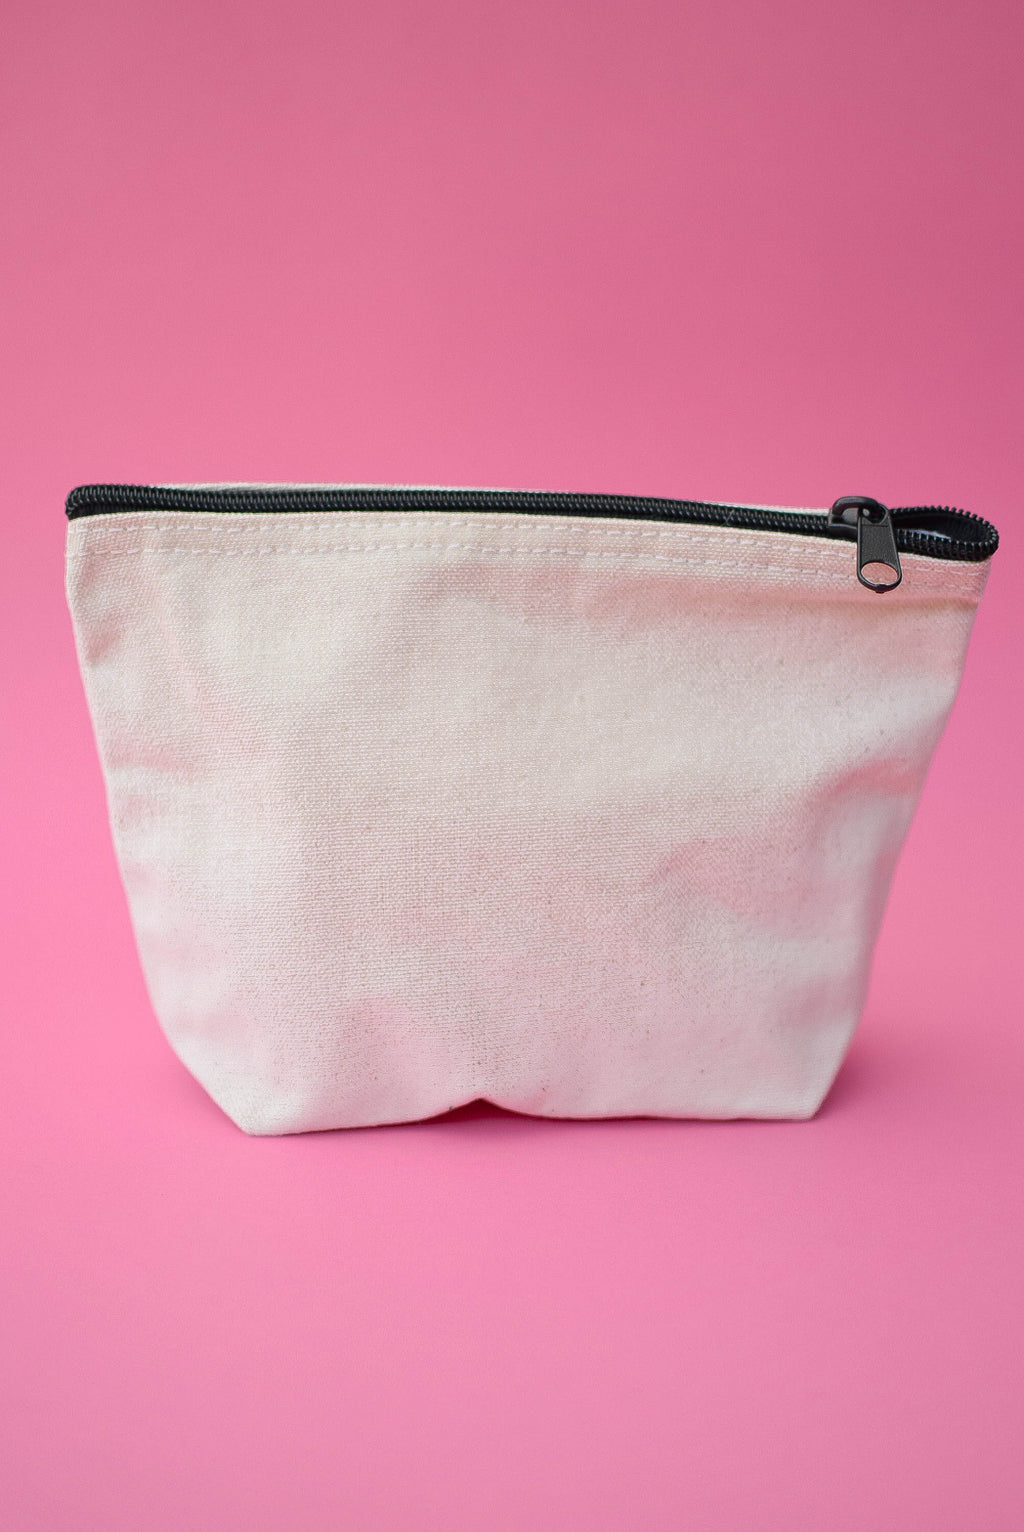 Keep Your Sh*t Together Makeup Bag - Mint Pop Shop